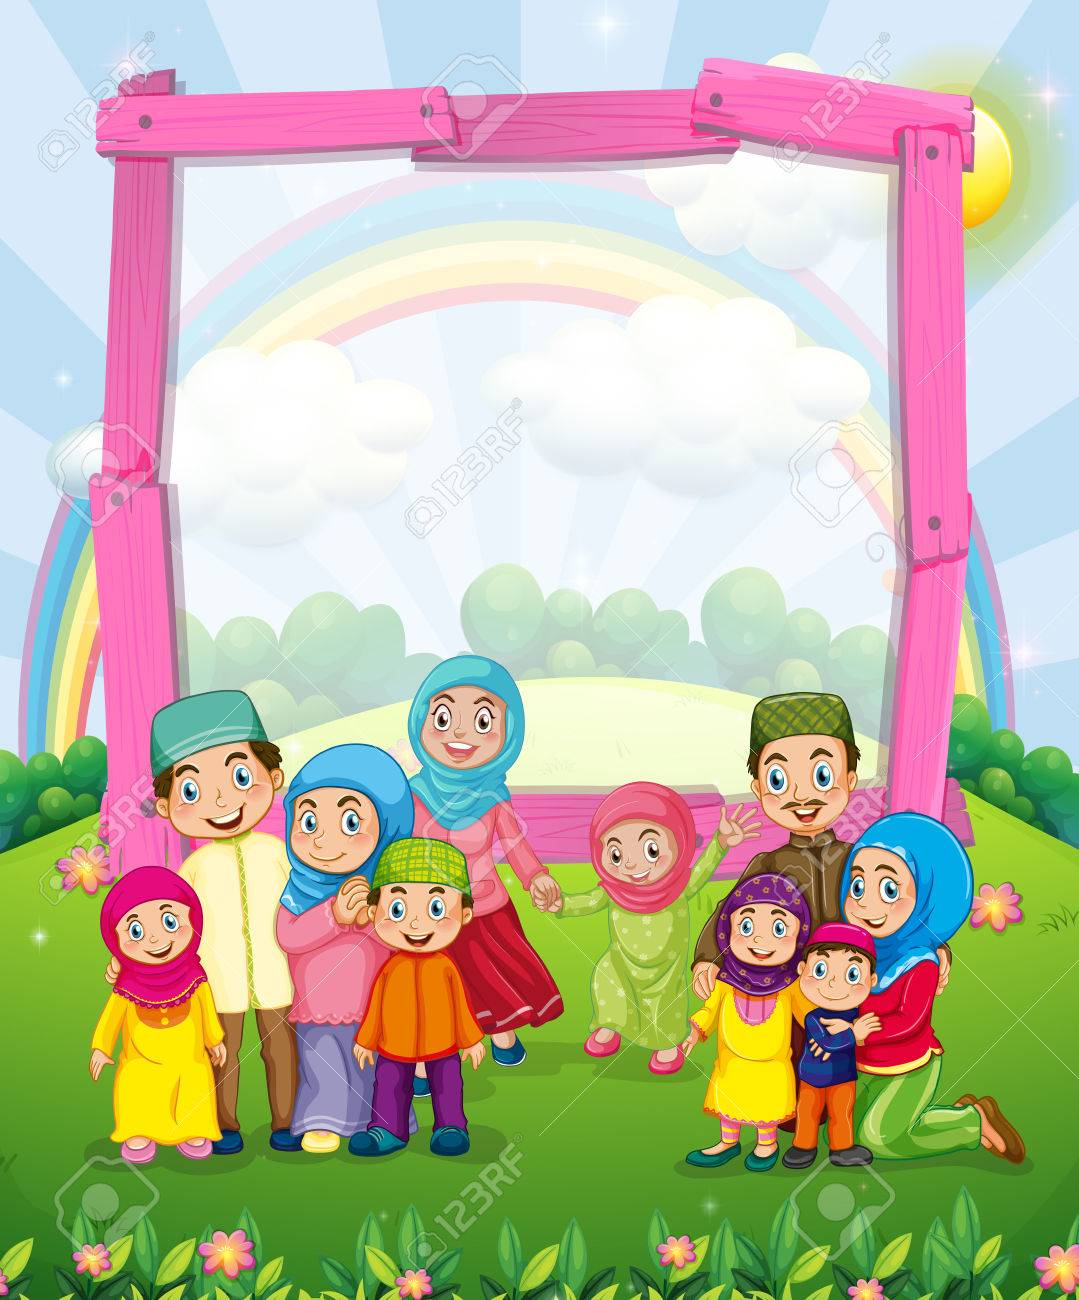 Border Design With Muslim Family Illustration Royalty Free